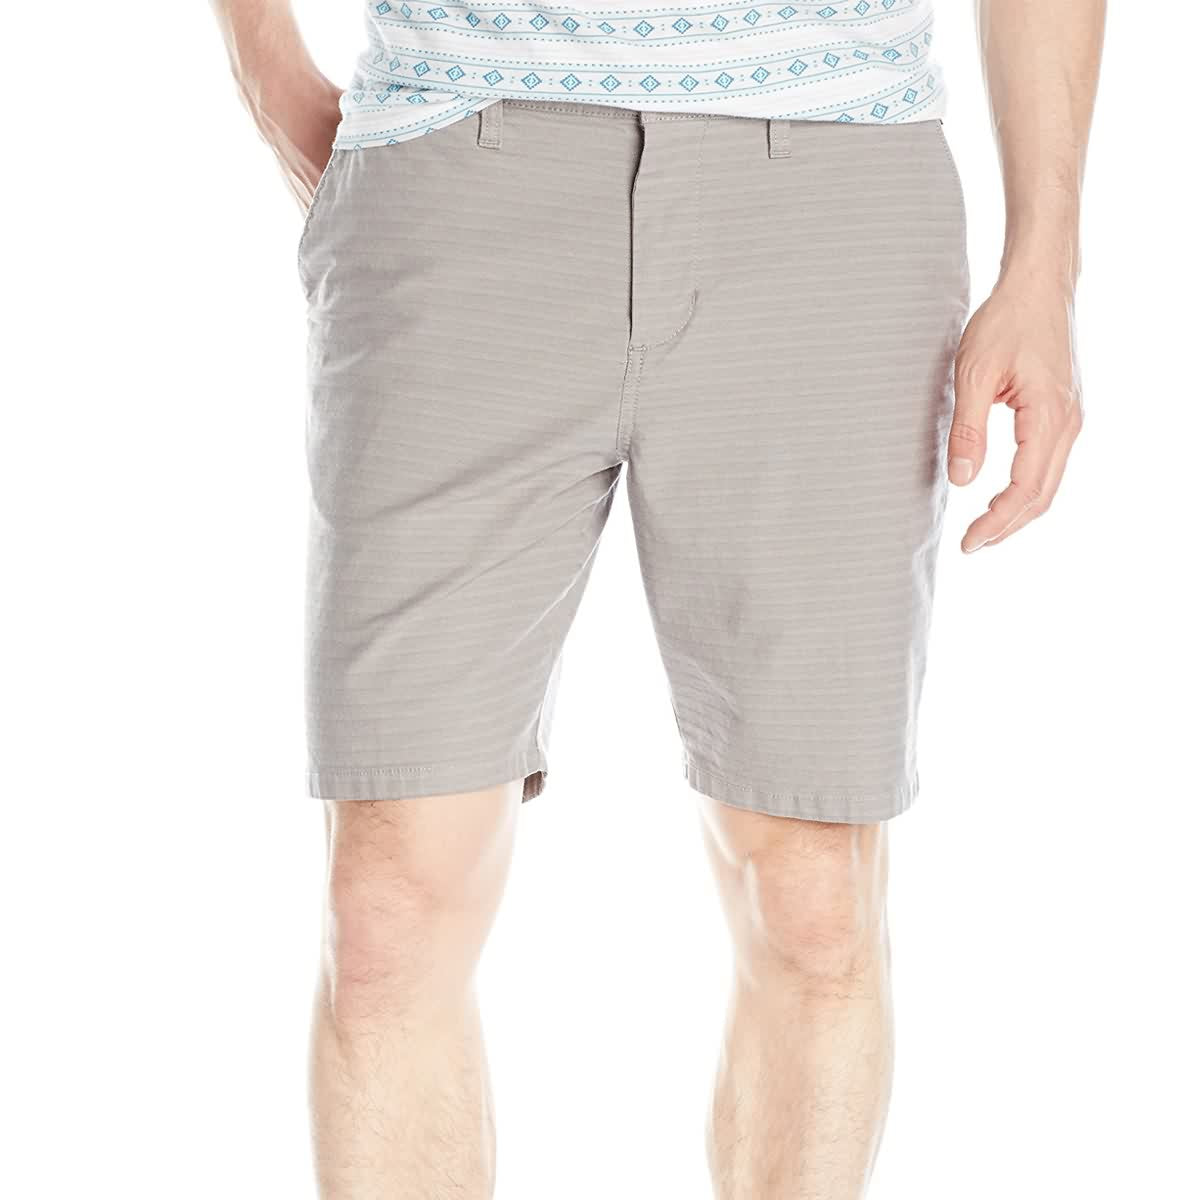 Billabong New Order Yarn Dye Men's Walkshort Shorts-M221JNEY